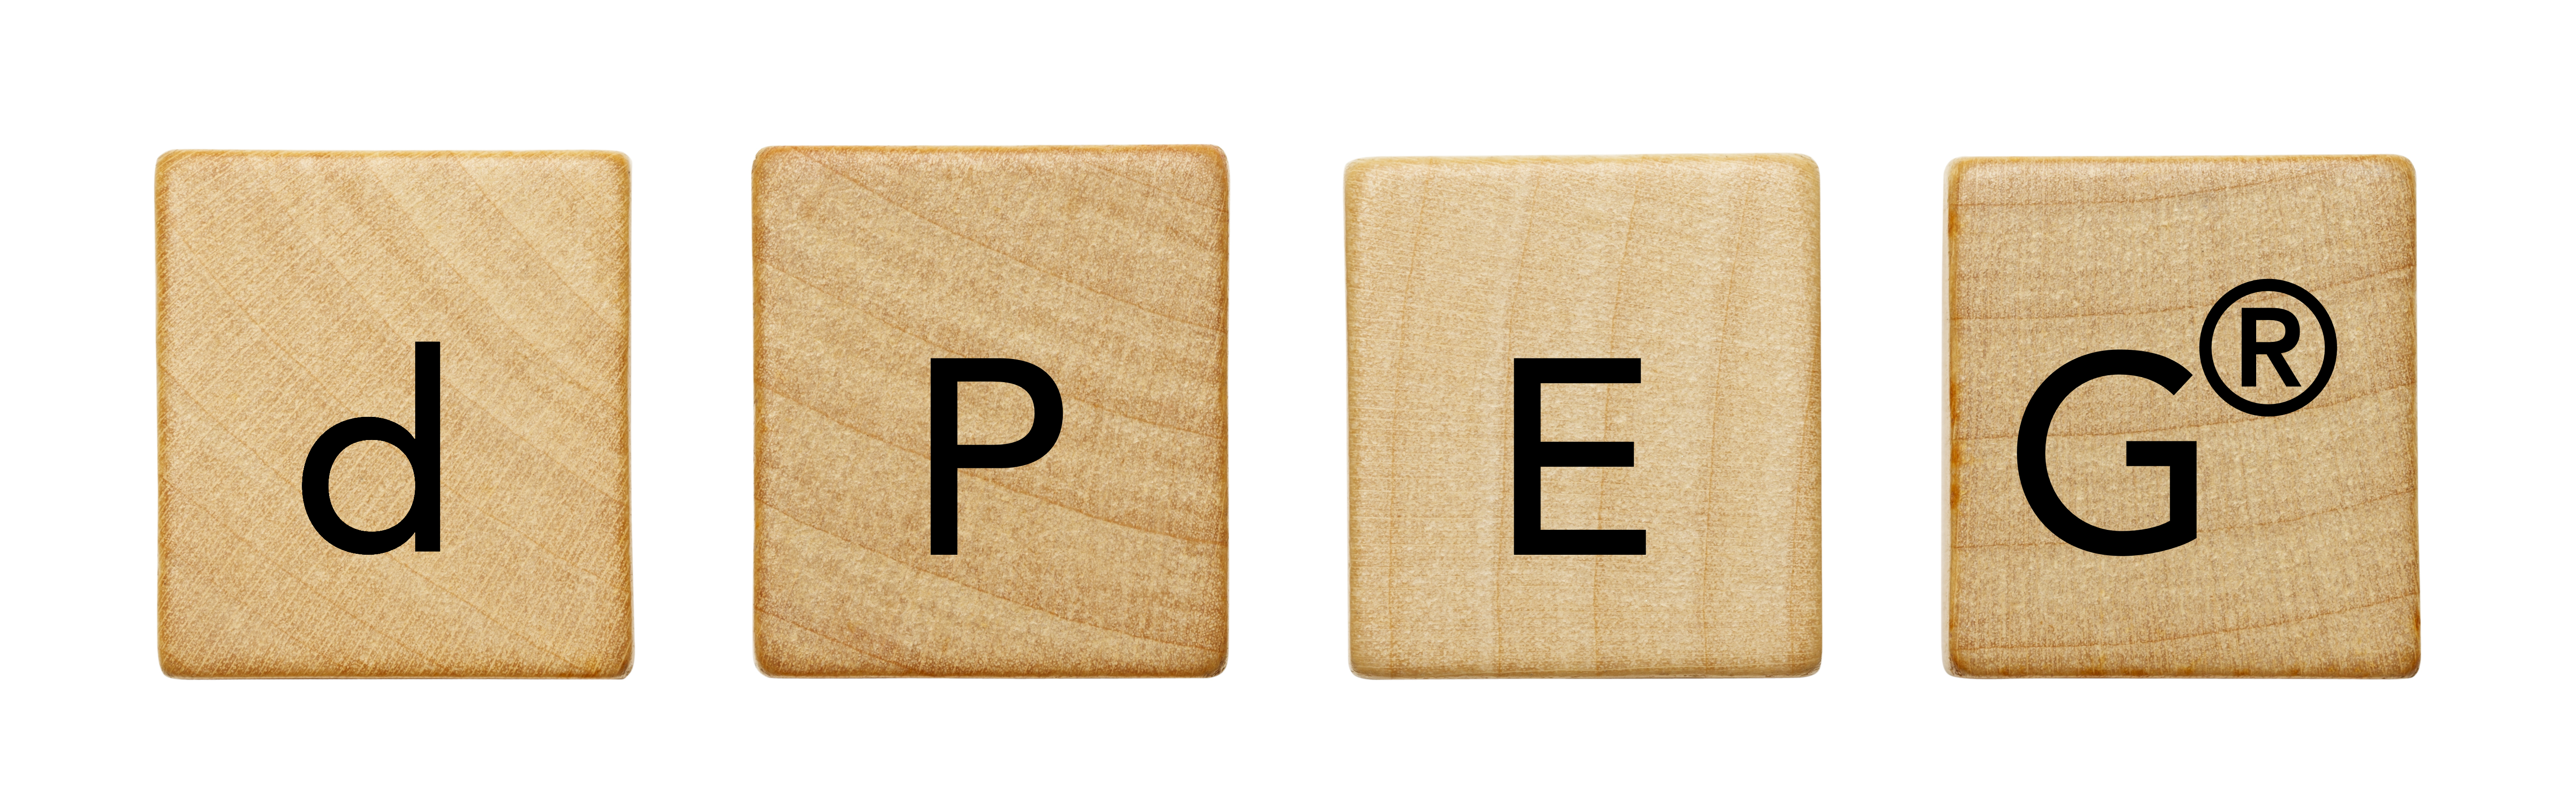 Four (4) wooden tiles with black letters that spell out dPEG®, which is Quanta BioDesign's trademark for single molecular weight polyethylene glycol derivatives. These wooden tiles represent the building blocks that dPEG® products provide in peptide synthesis.